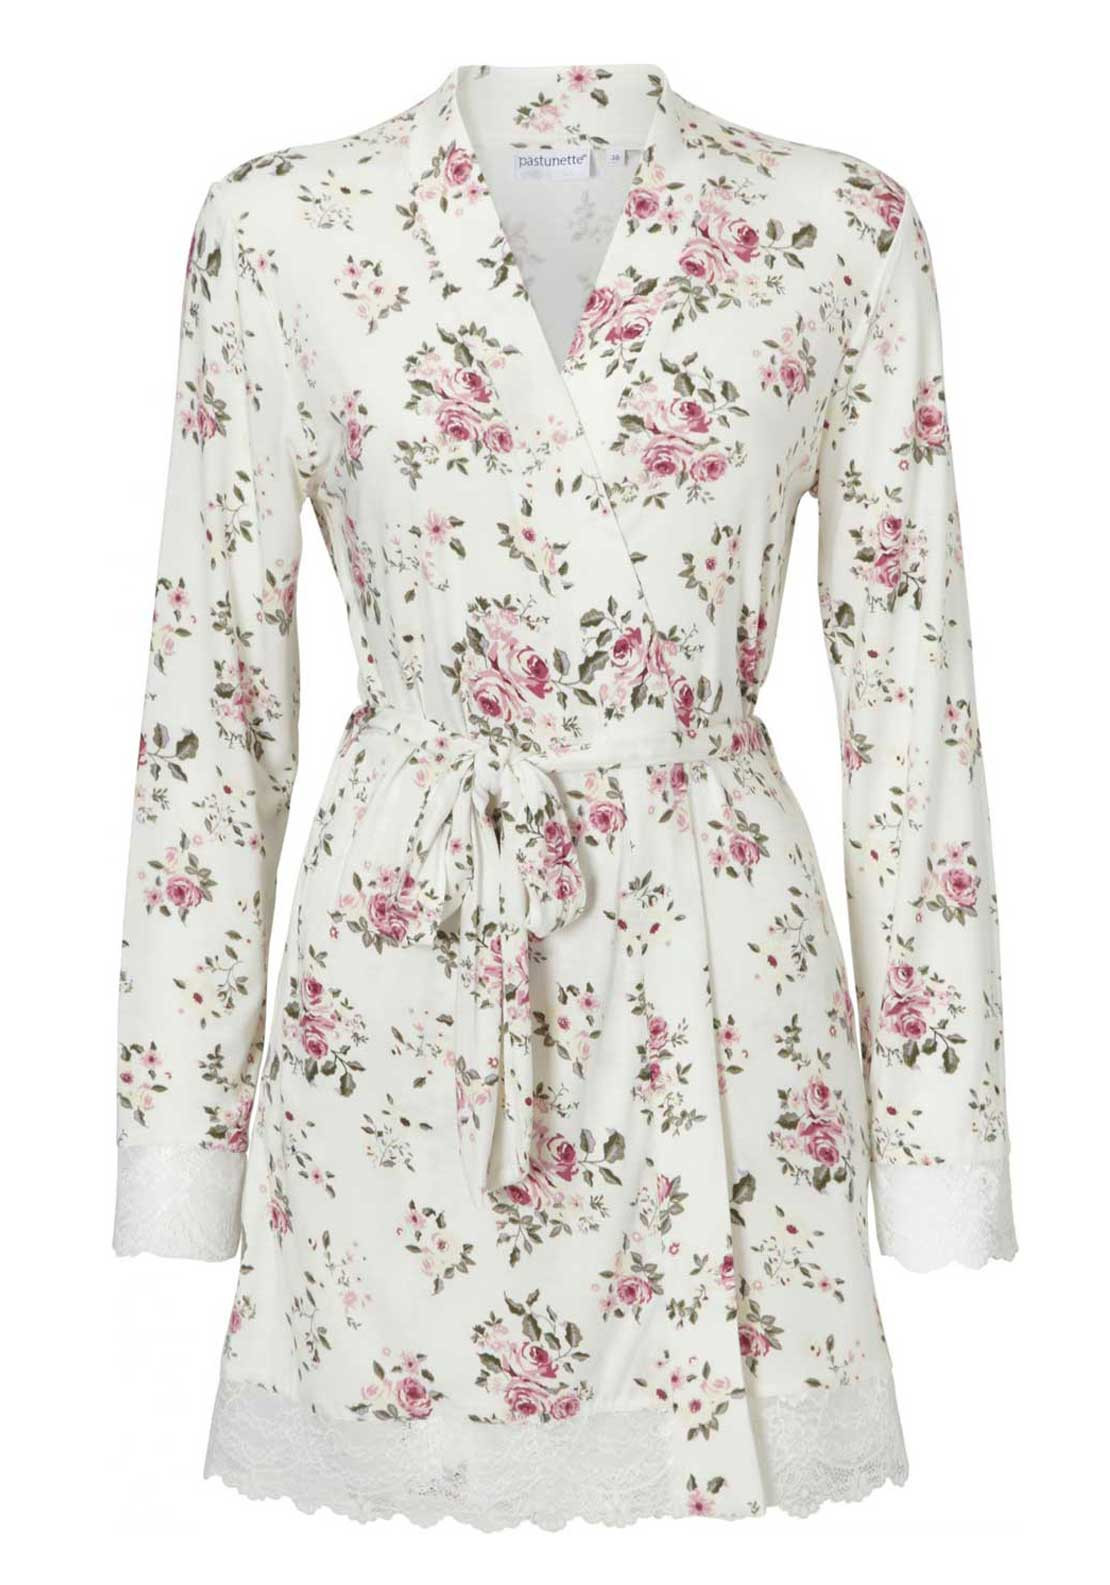 Pastunette Floral Print Dressing Gown, White Multi